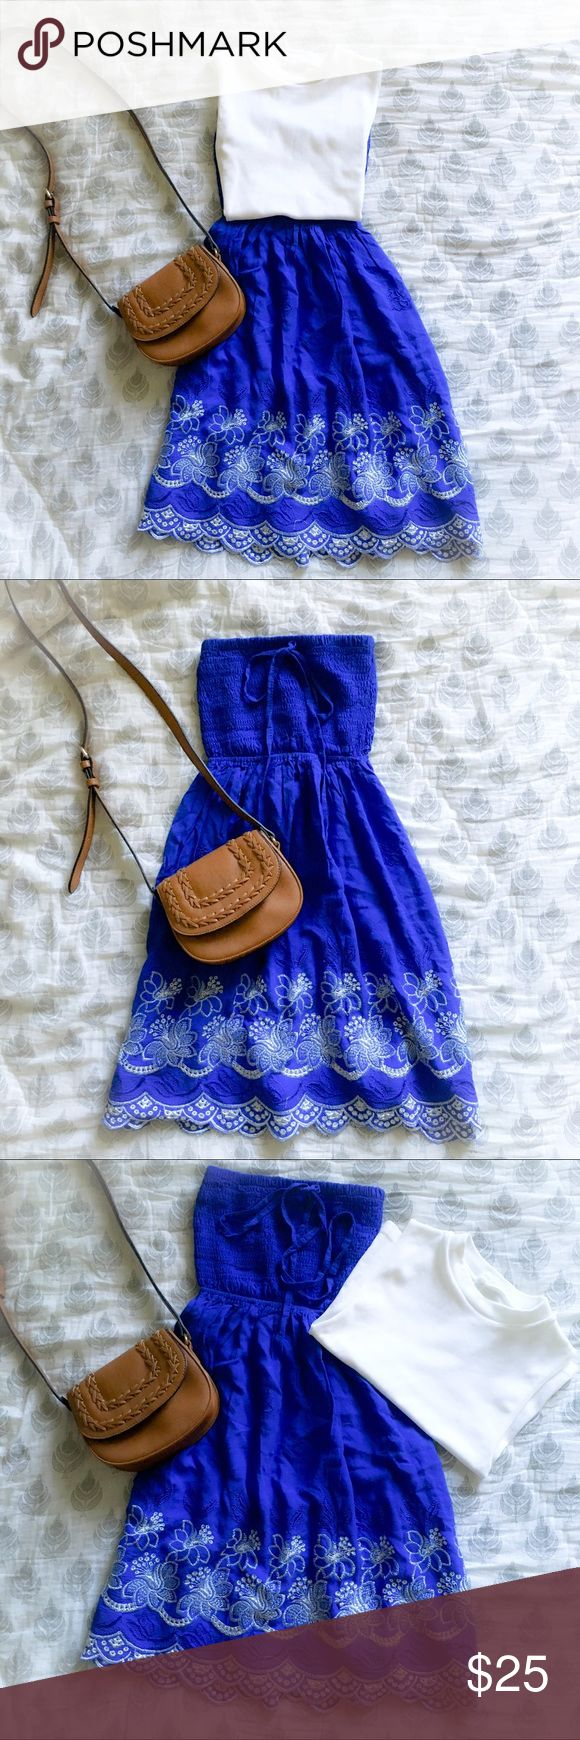 Royal Blue and White Scalloped Embroidered Dress Gorgeous royal blue dress. Tube Top with straps so you can wear it as a halter as well! You can fold the tube top down, pair it with a top and wear it as a skirt! Wear it over your bikini and pair with sandals for a casual look at the beach, or pair with heels for a girls' night out. Beach by Exist Dresses